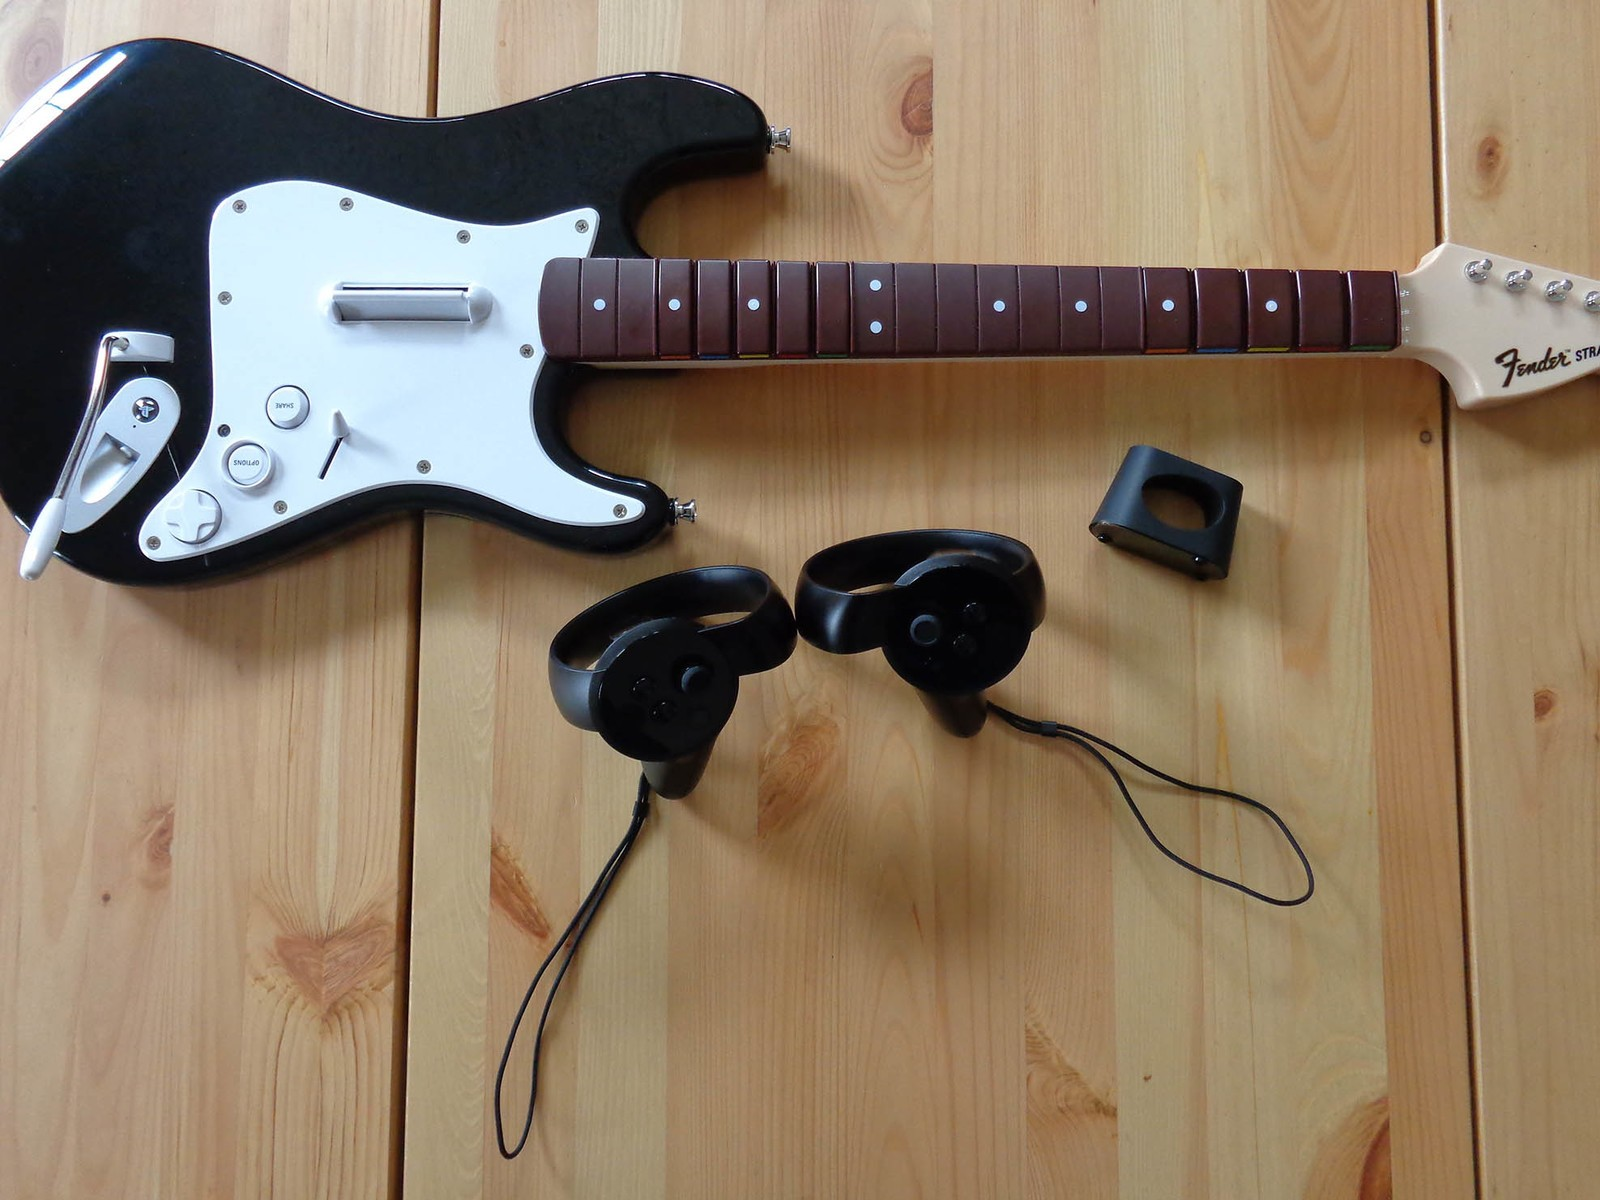 How to connect your Oculus Touch controller to the Rock Band guitar